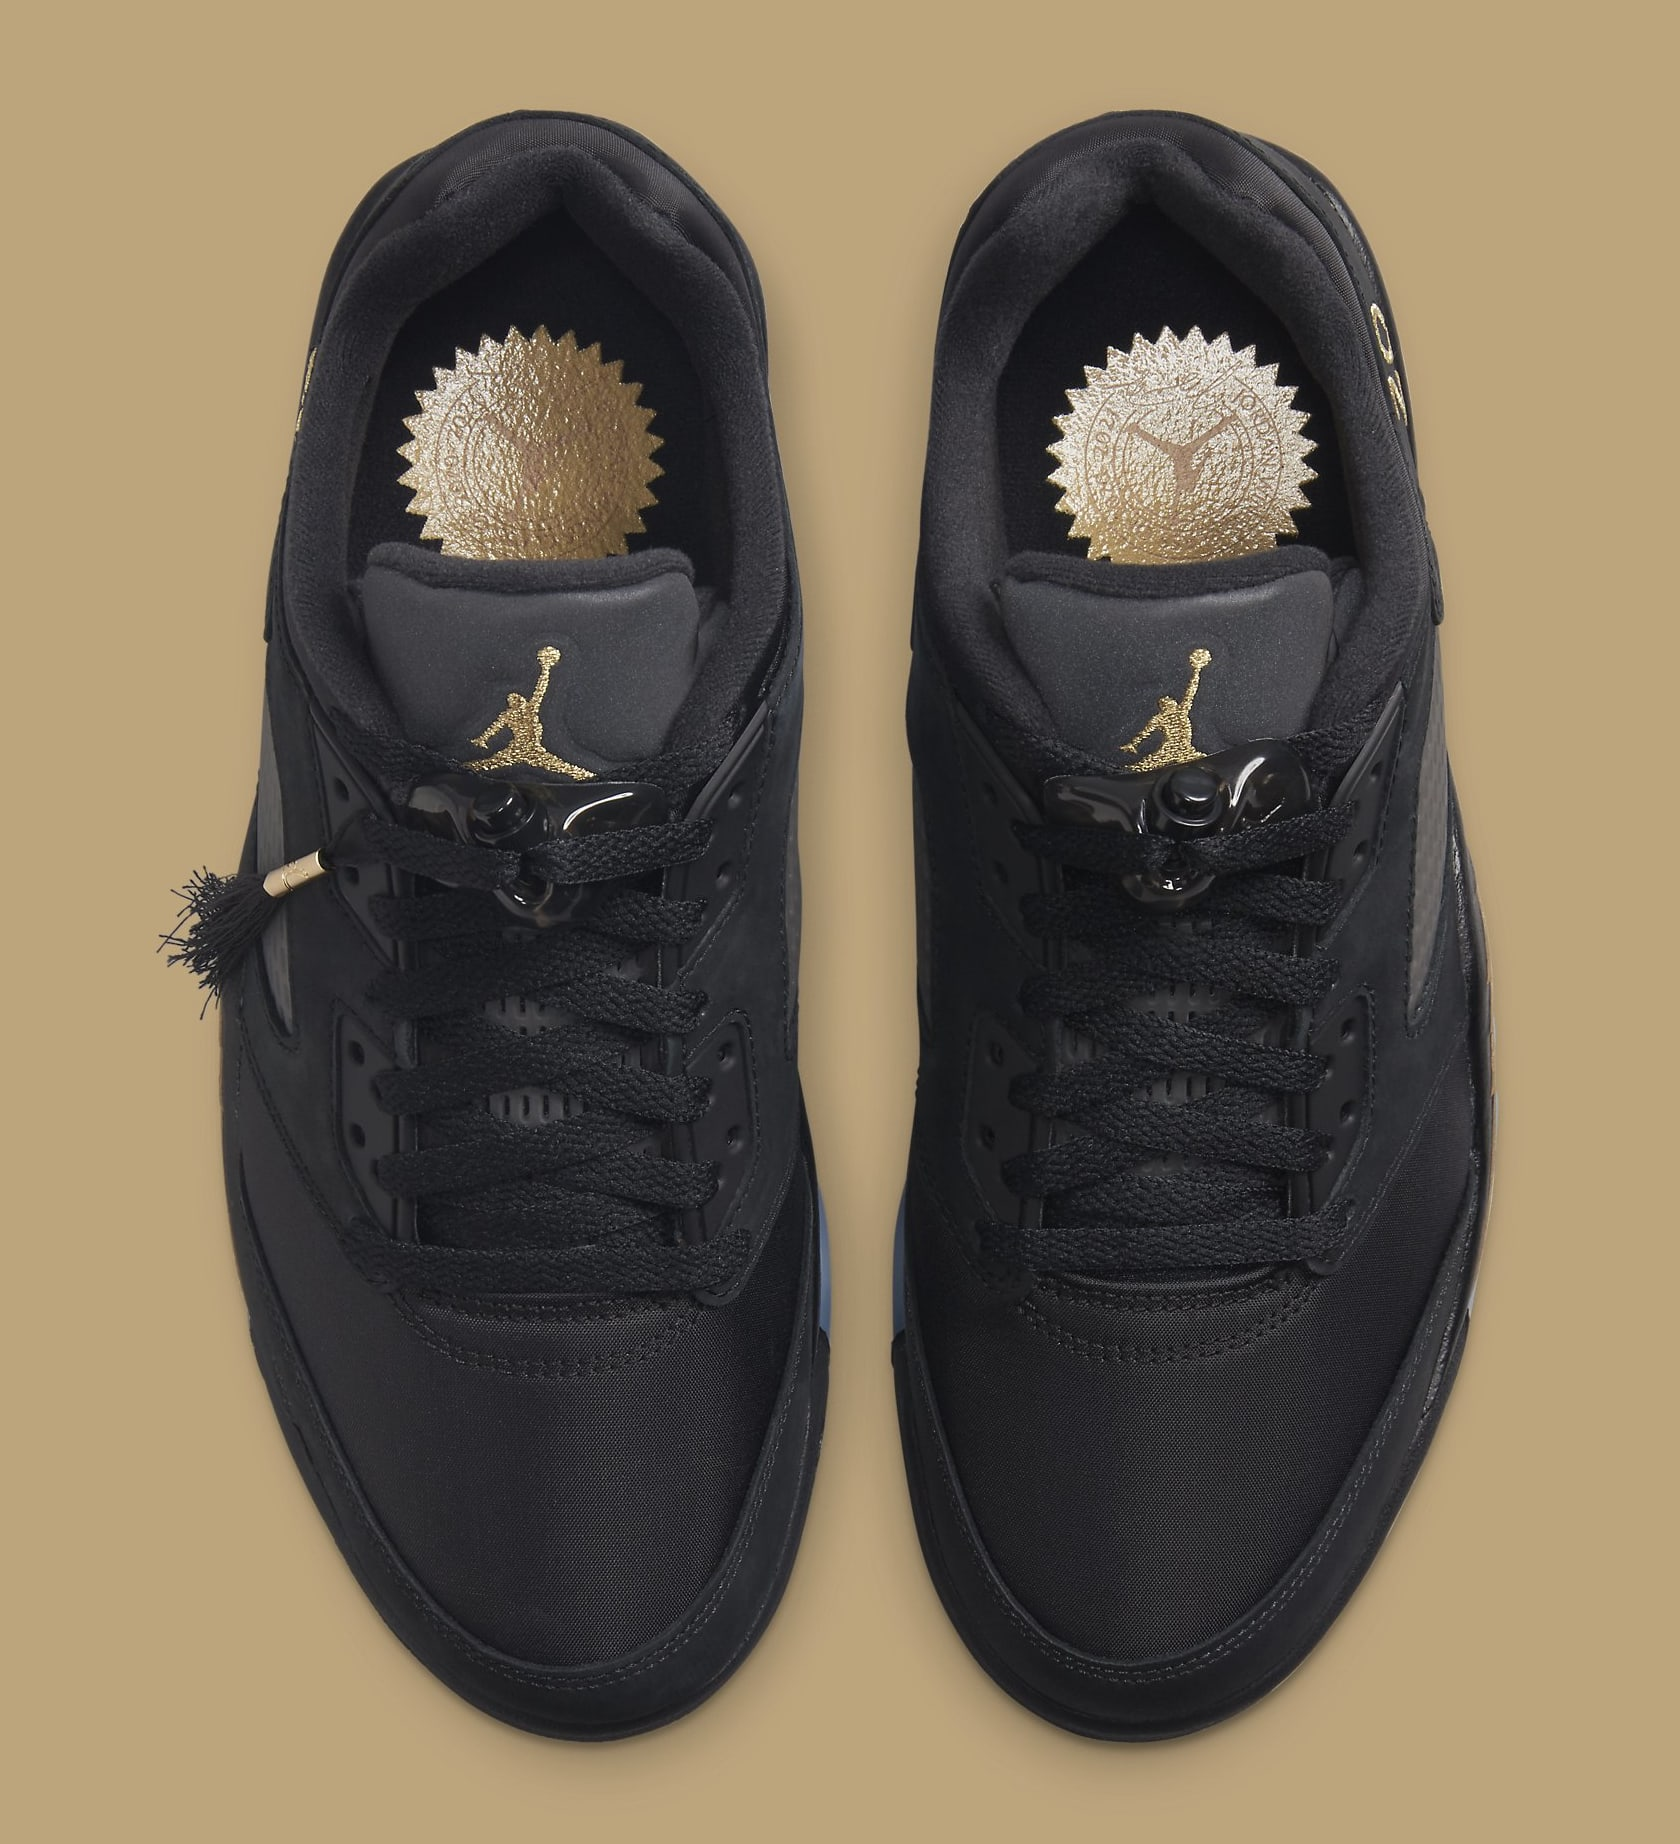 Air Jordan 5 Retro Low Wings 'Class of 2020-21' DJ1094-001 Top